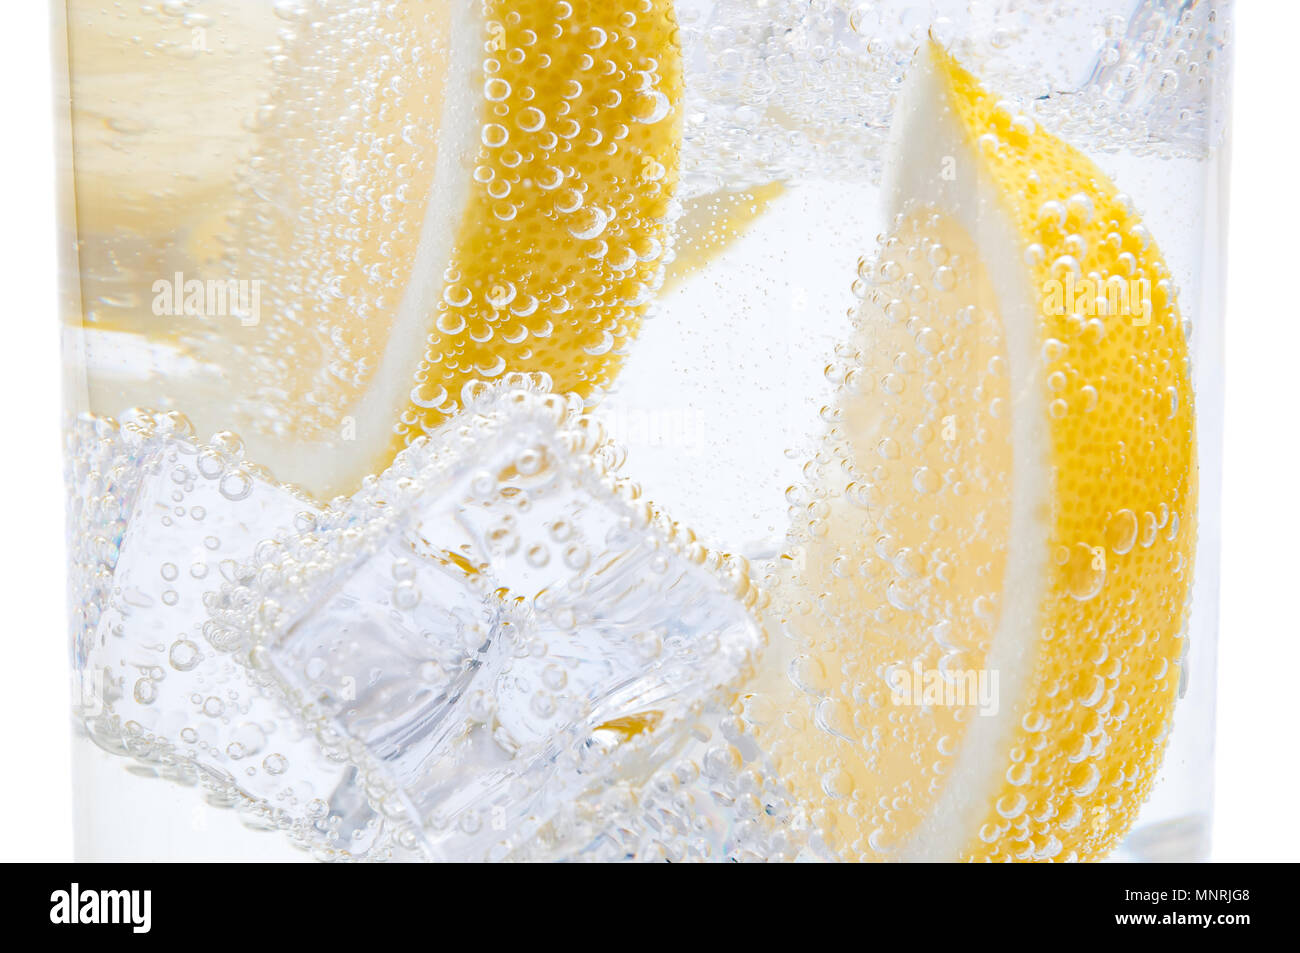 In a glass with cubes of melting ice slices of a juicy lemon. - Stock Image